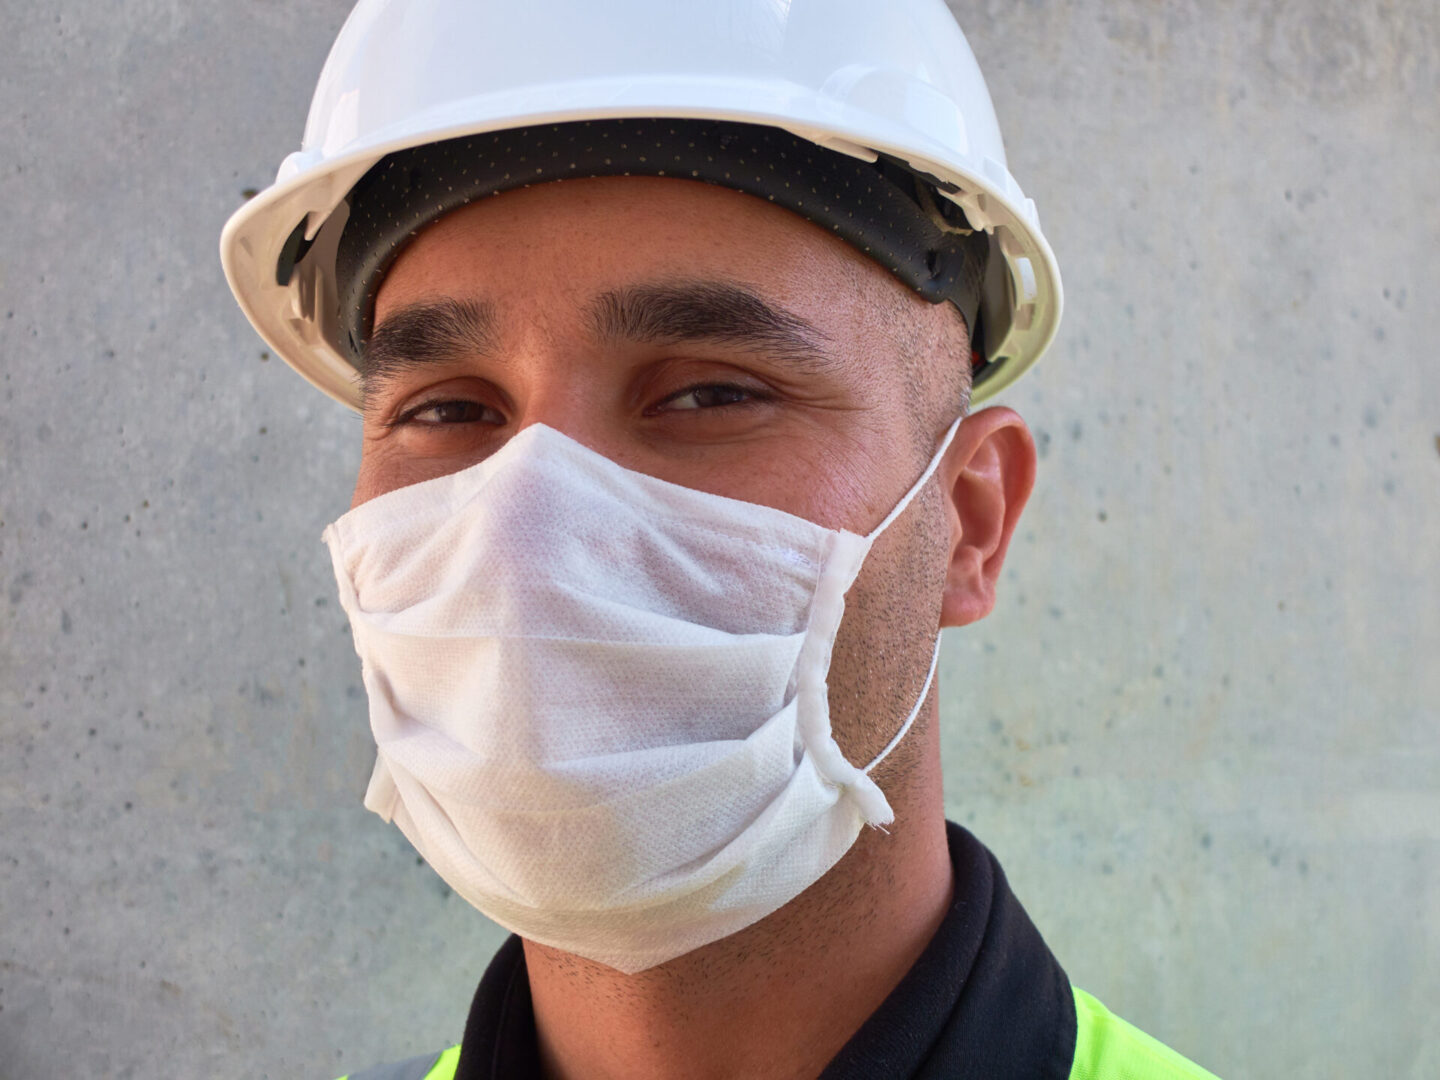 Civil,Engineer,Wears,Protective,Medical,Mask,Standing,Against,Concrete,Wall